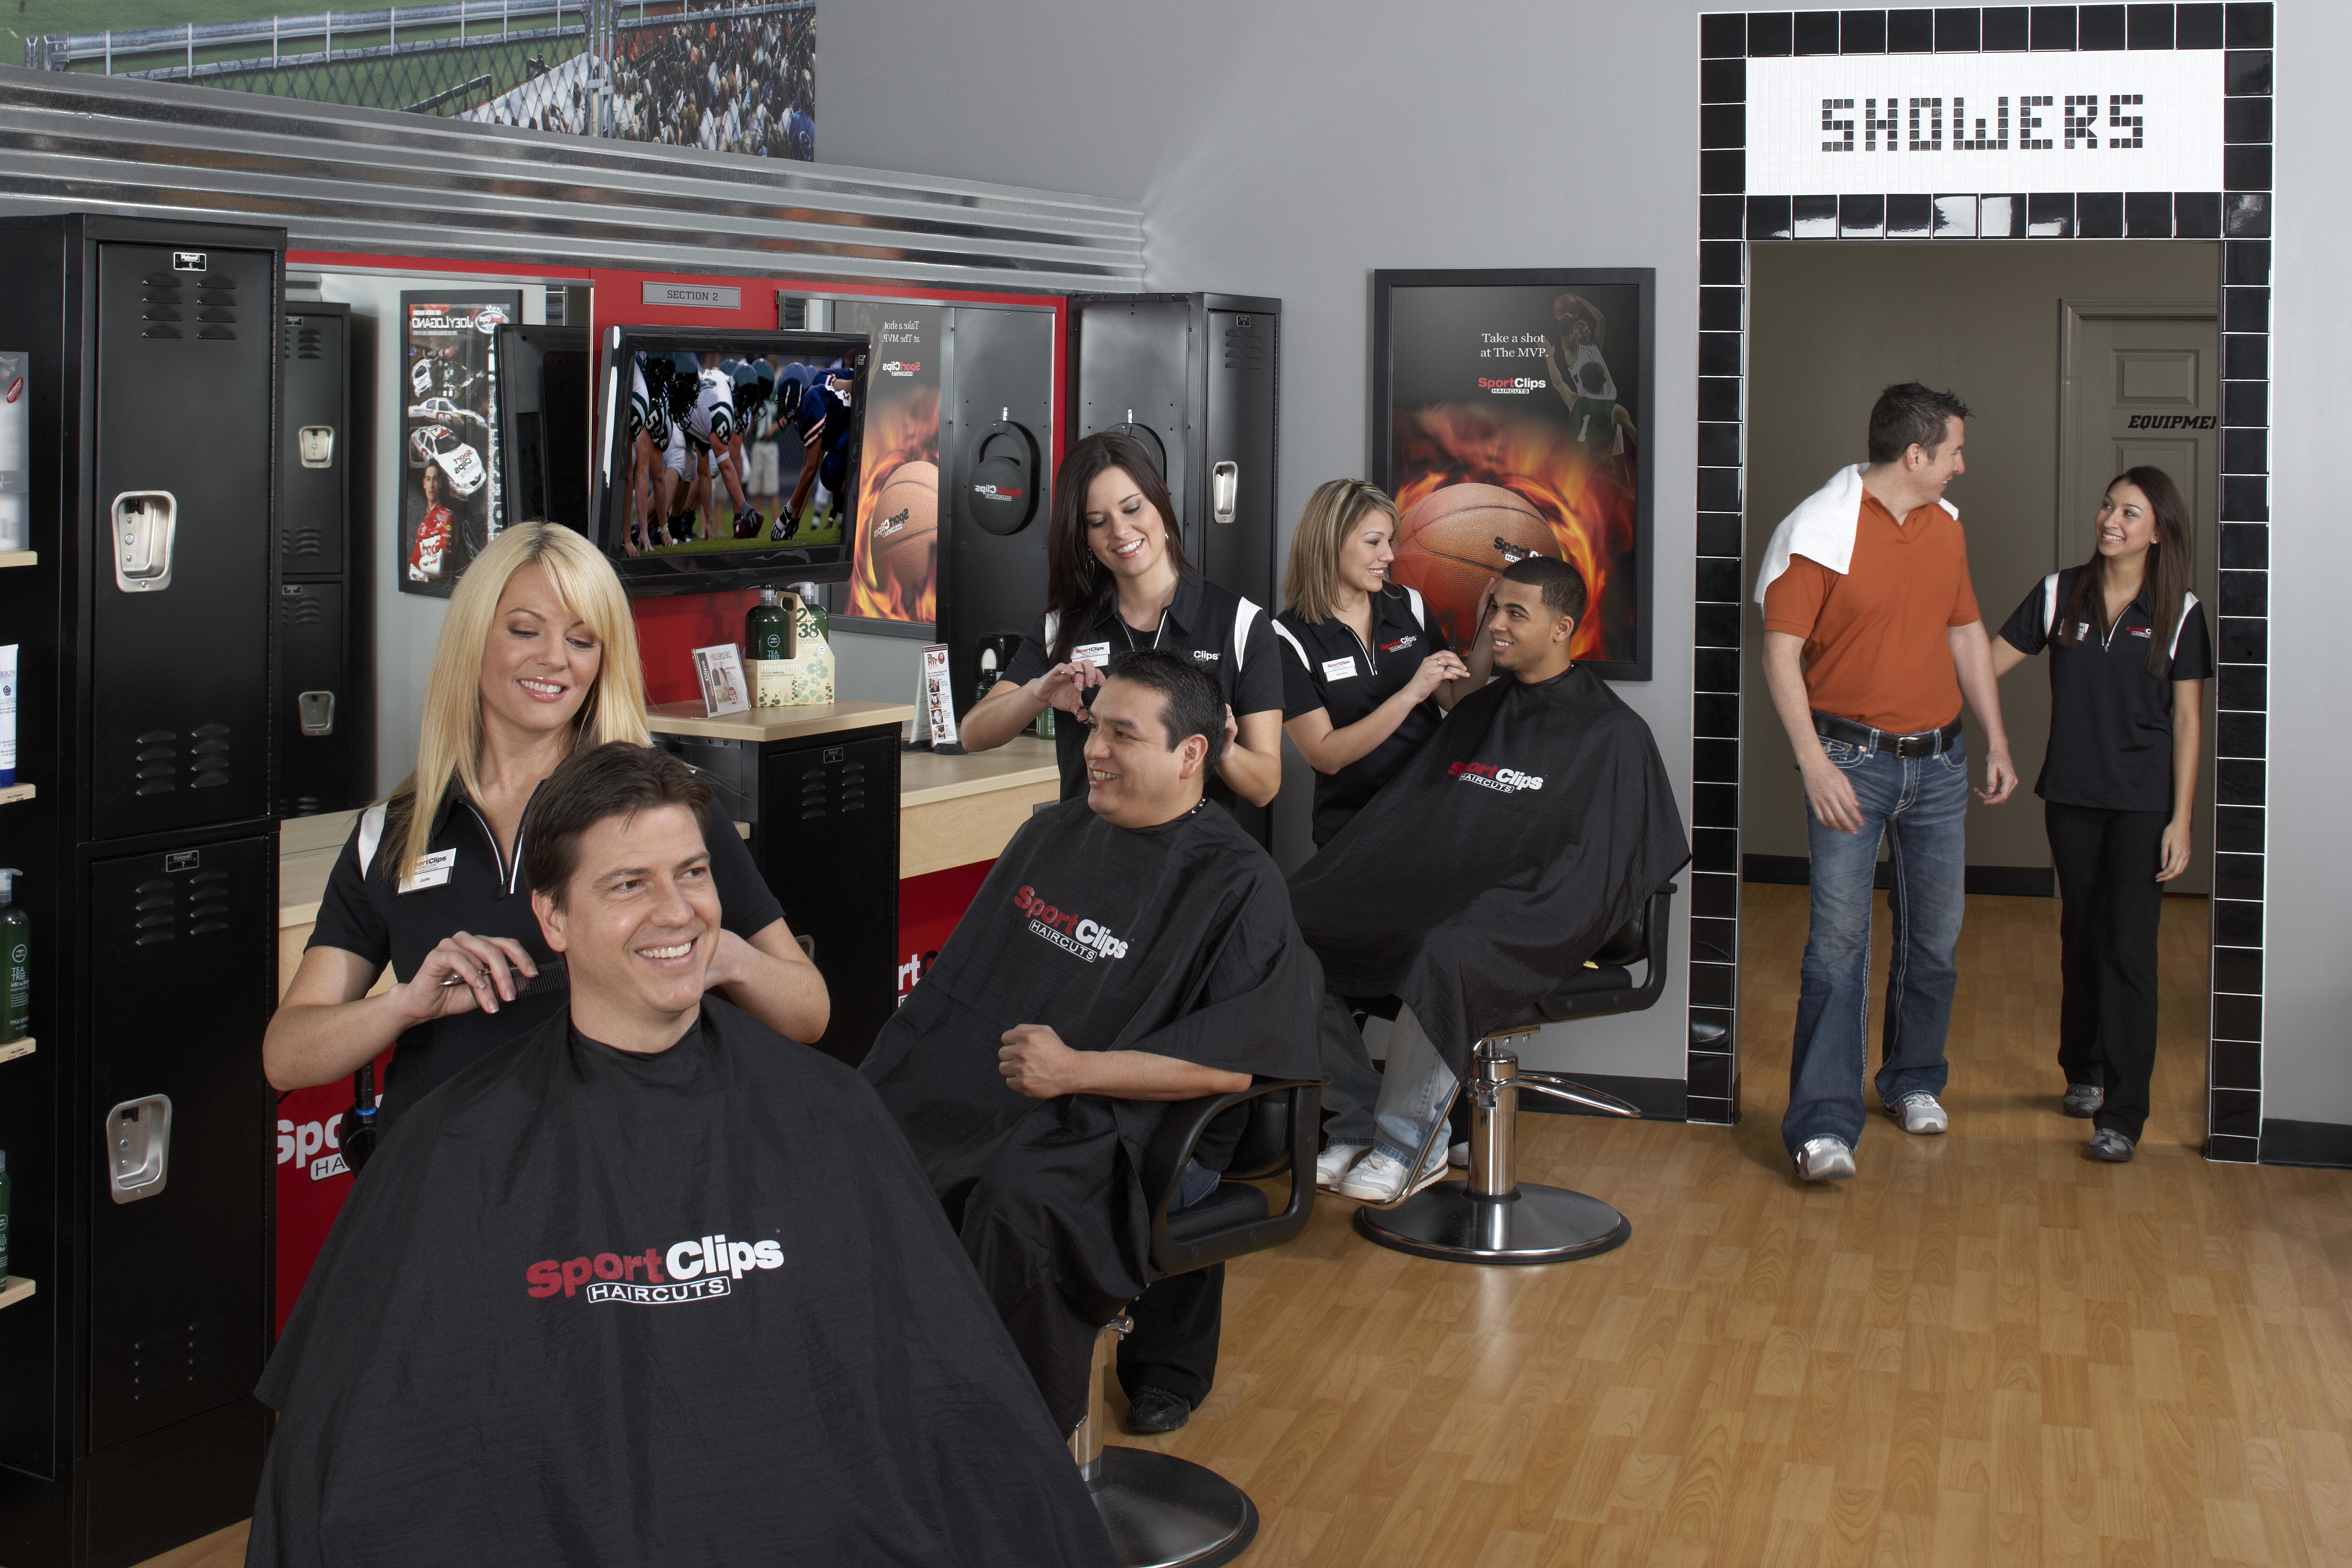 Sports Clips Near Me – Sports Clips Facts Sports Clips Services If you're searching Sports Clips near me, then you want a great haircut without paying an arm and a leg.